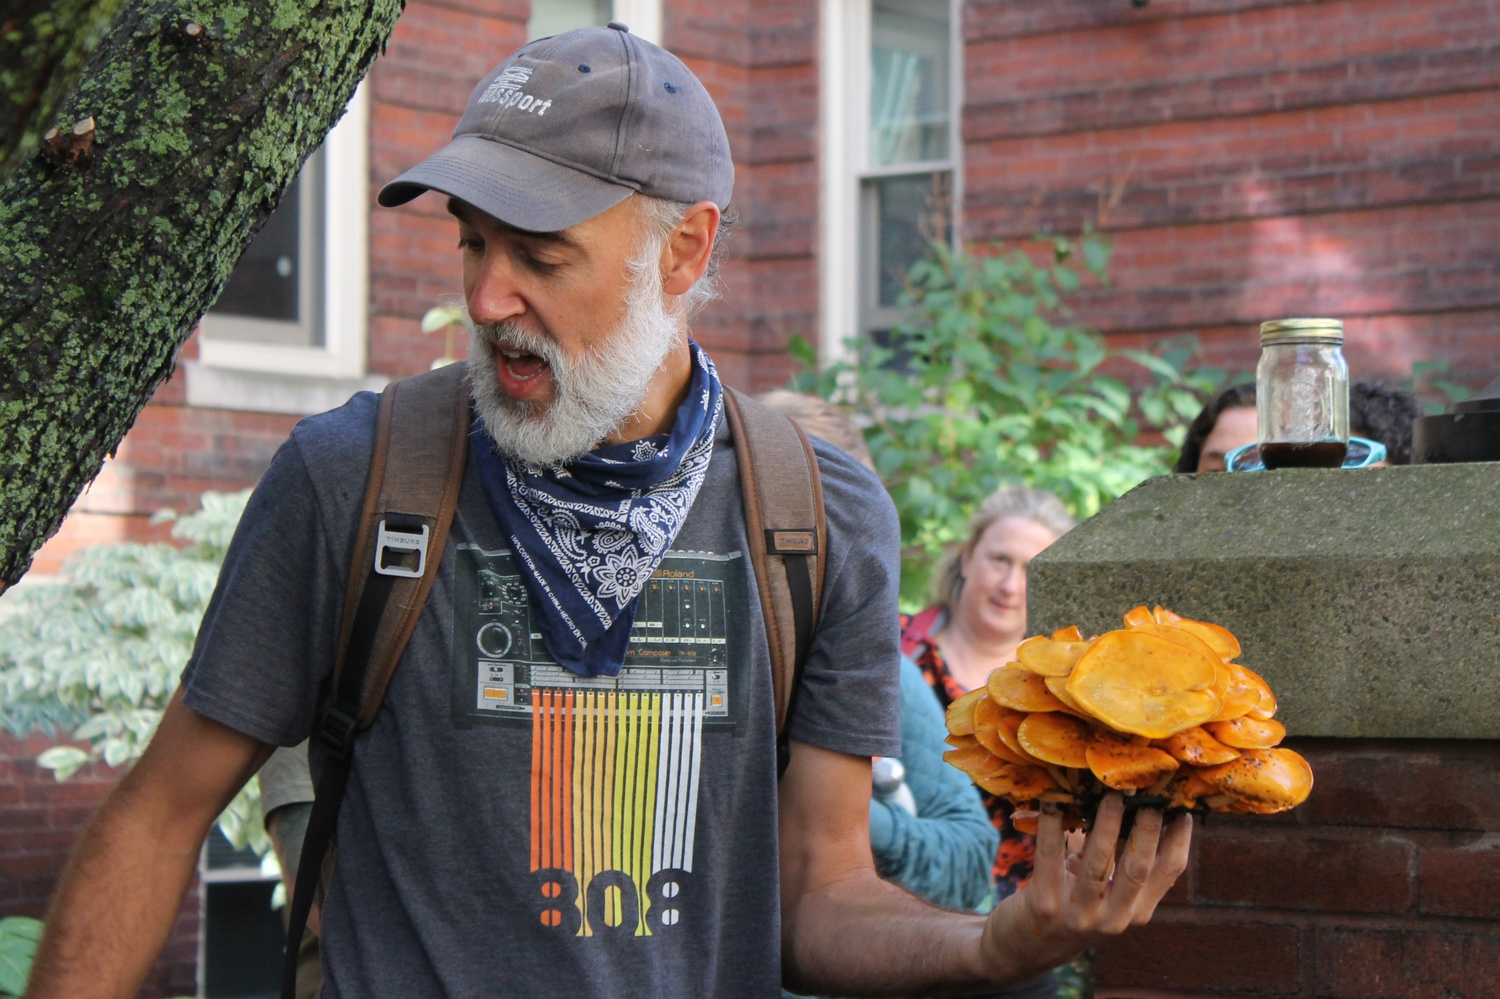 David L. Craft holds up a jack-o'-lantern mushroom in Cambridge. These mushrooms are poisonous.